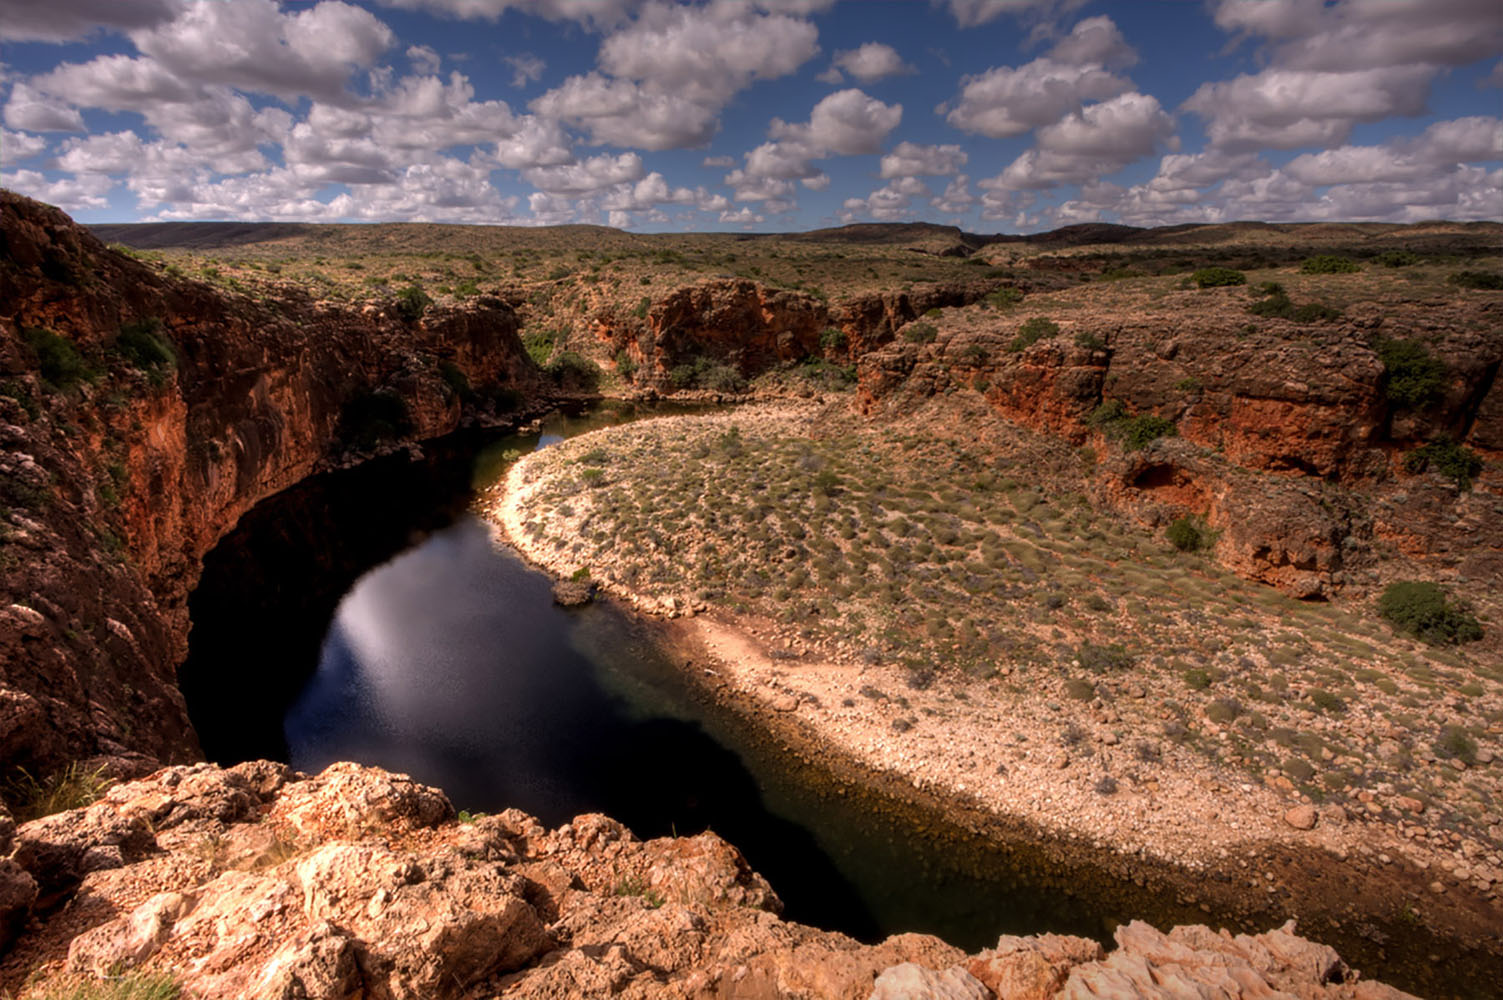 ​Yardie Creek Gorge in Exmouth, Australia